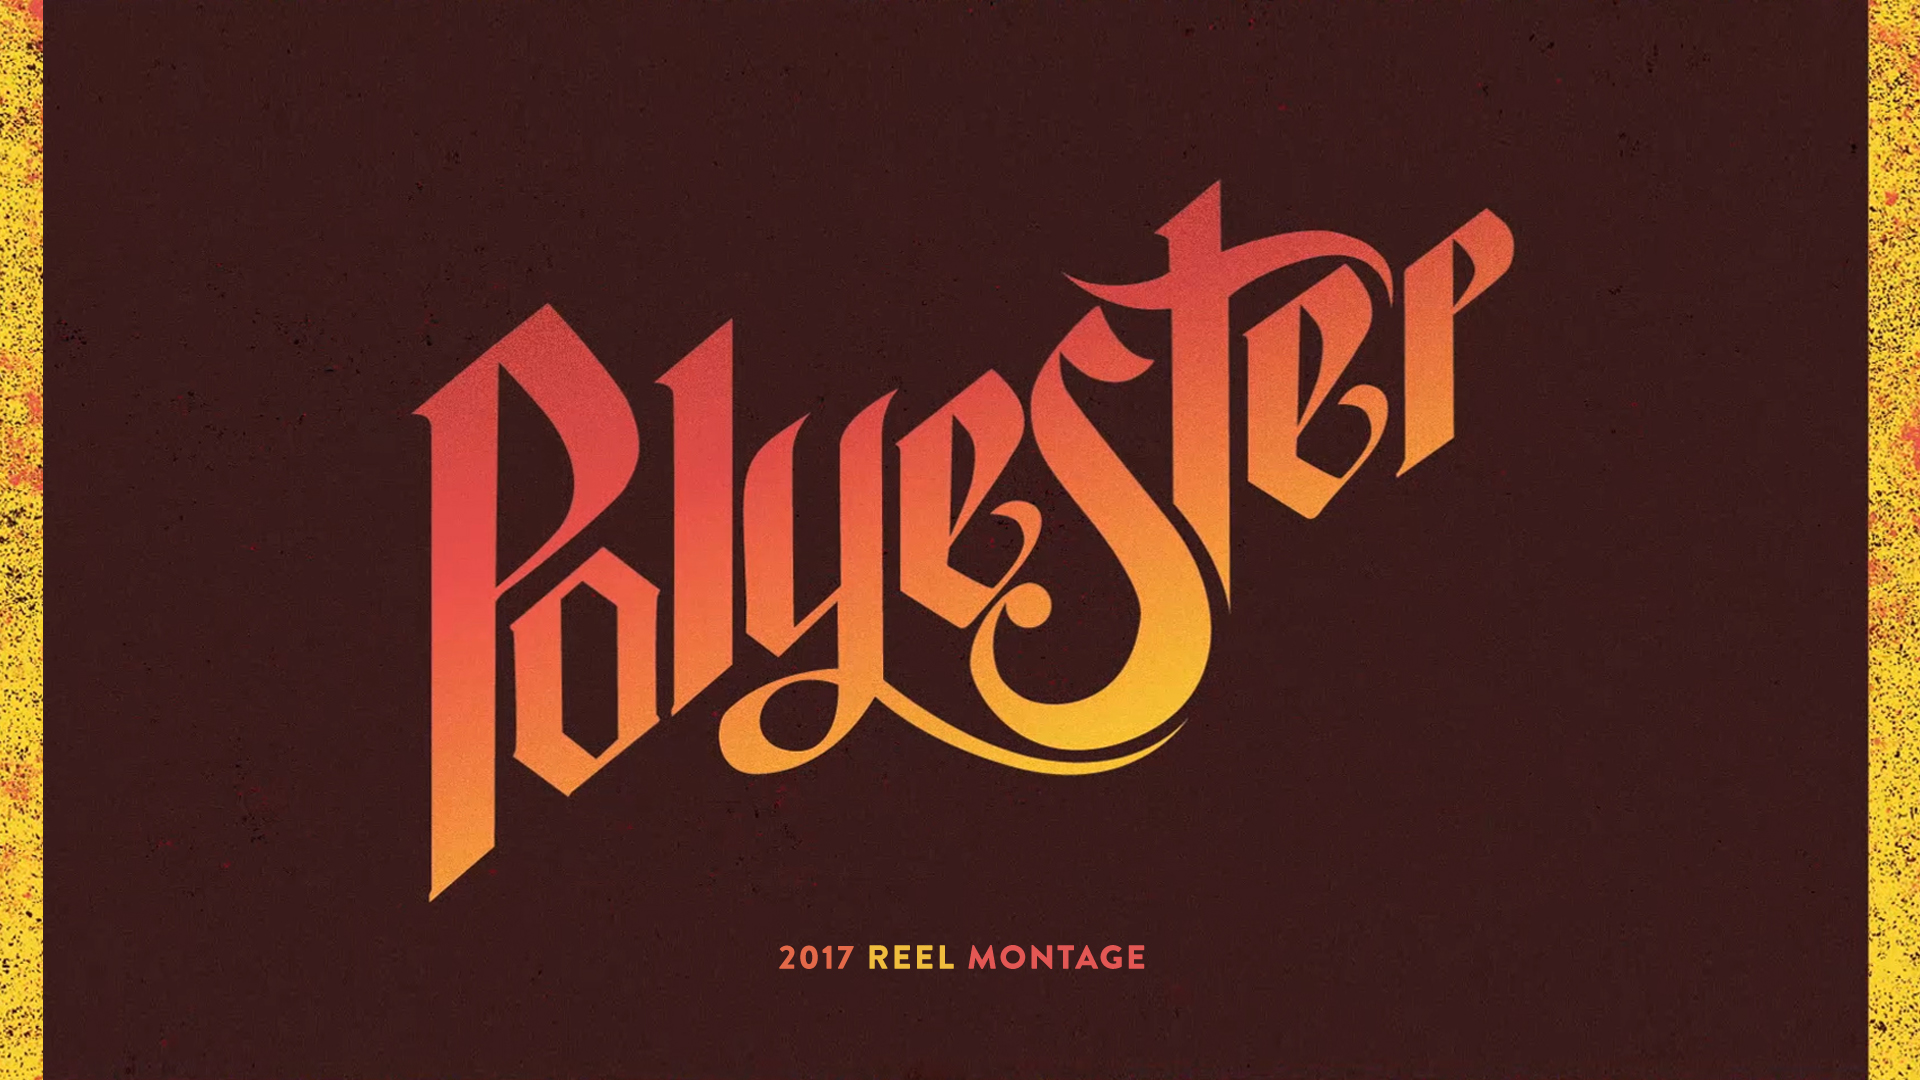 2017 Polyester Reel Montage